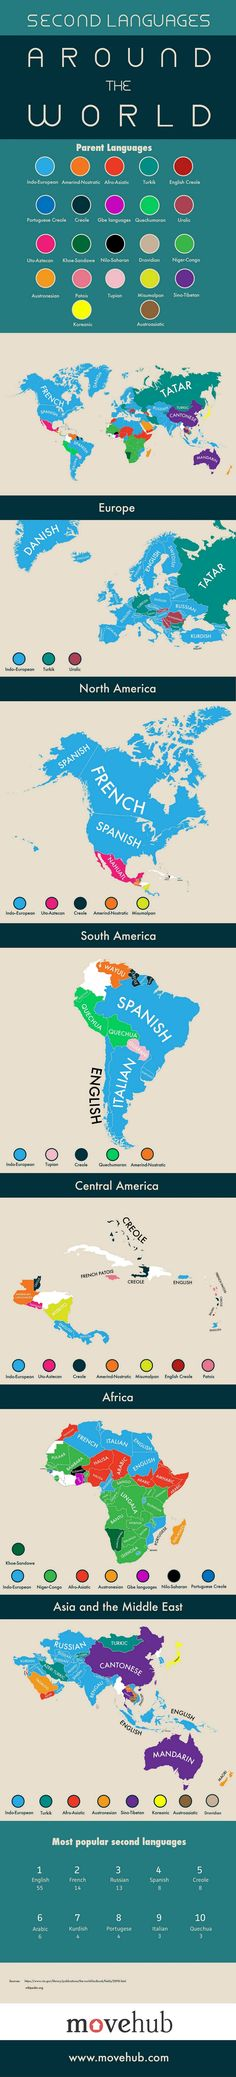 The Second Languages Of Every Part Of The World In One Incredible Infographic http://www.businessinsider.com/the-second-languages-in-every-part-of-the-world-infographic-2014-10#ixzz3HtgRMgIF